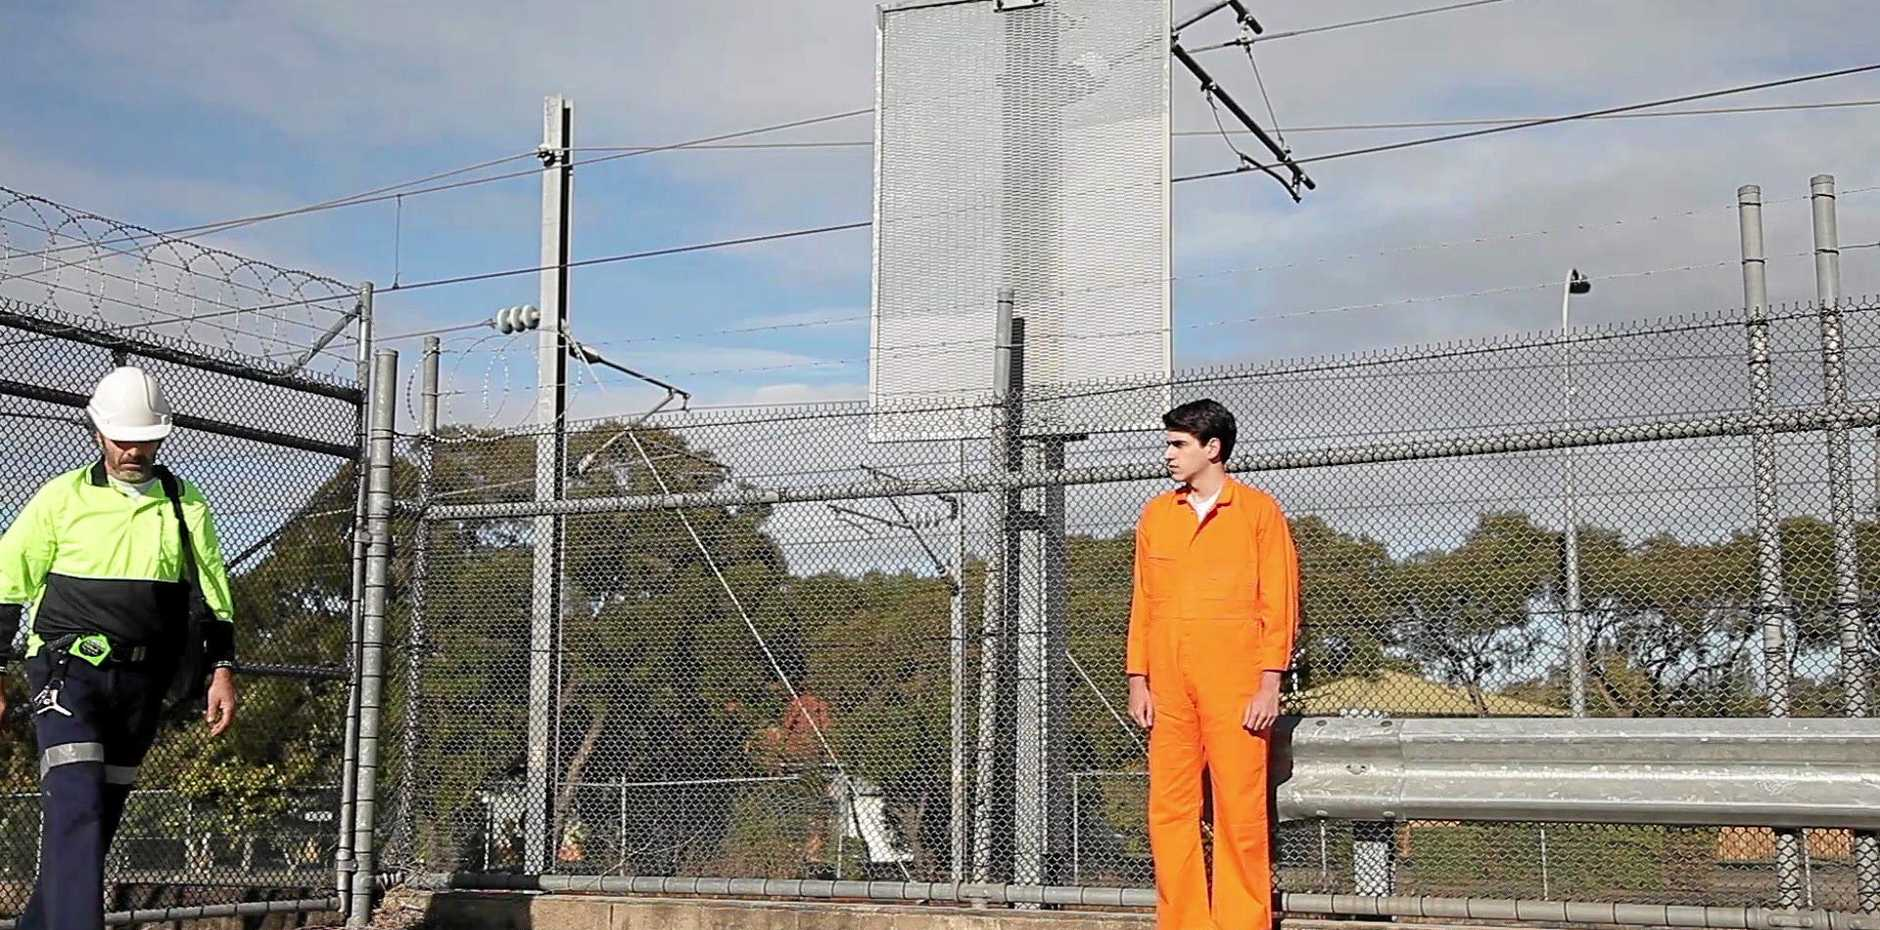 Andrew Groundwater stands on set at Zillmere Rd during An Afterlife filming.